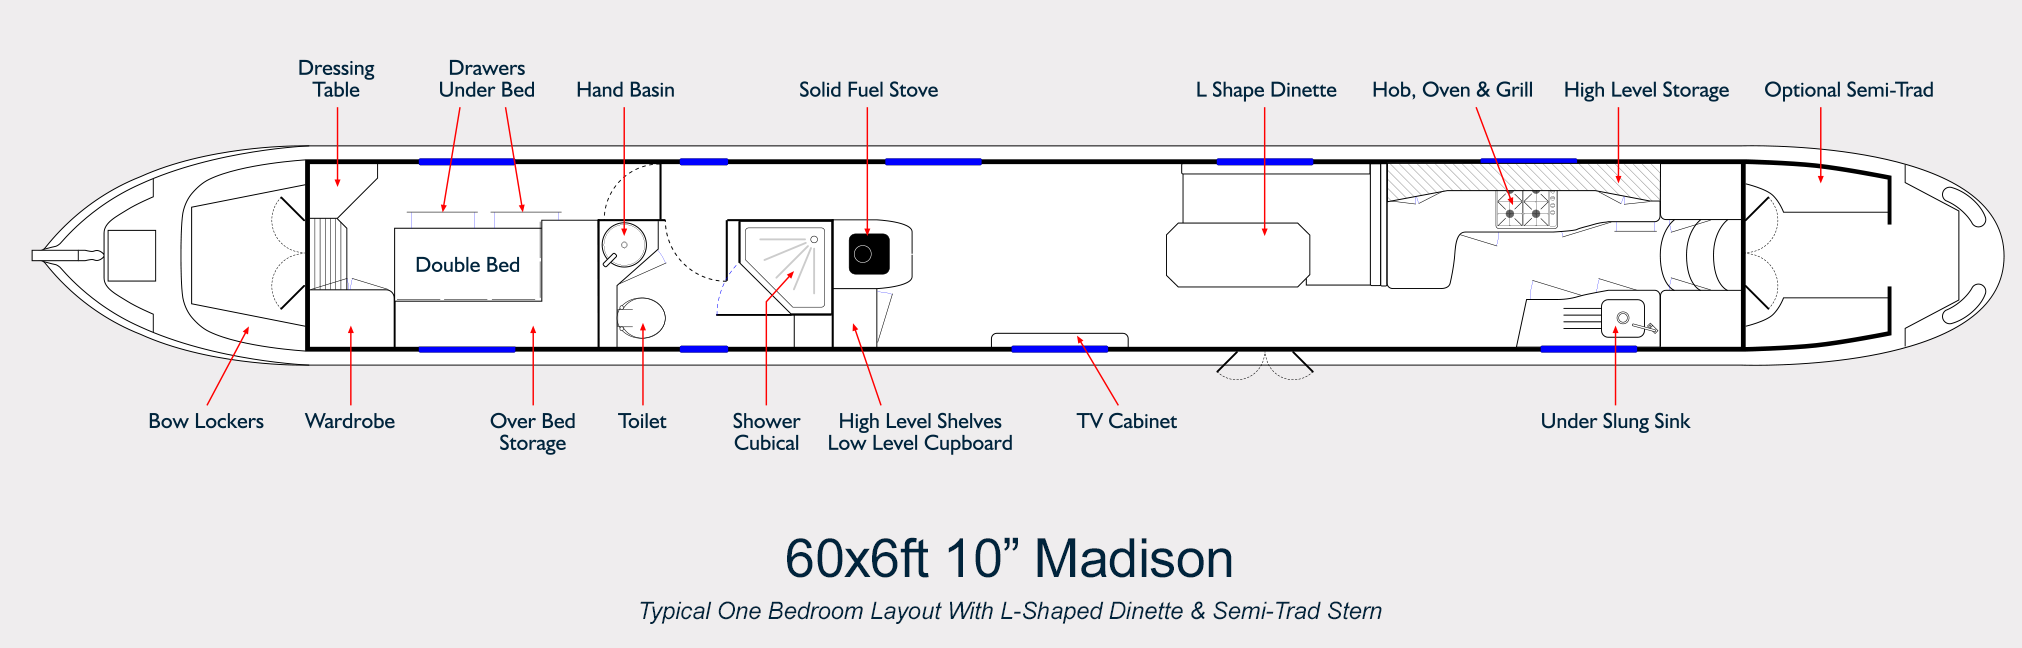 Aqualine Narrowboat Builders Layout Drawing 60ft Madison